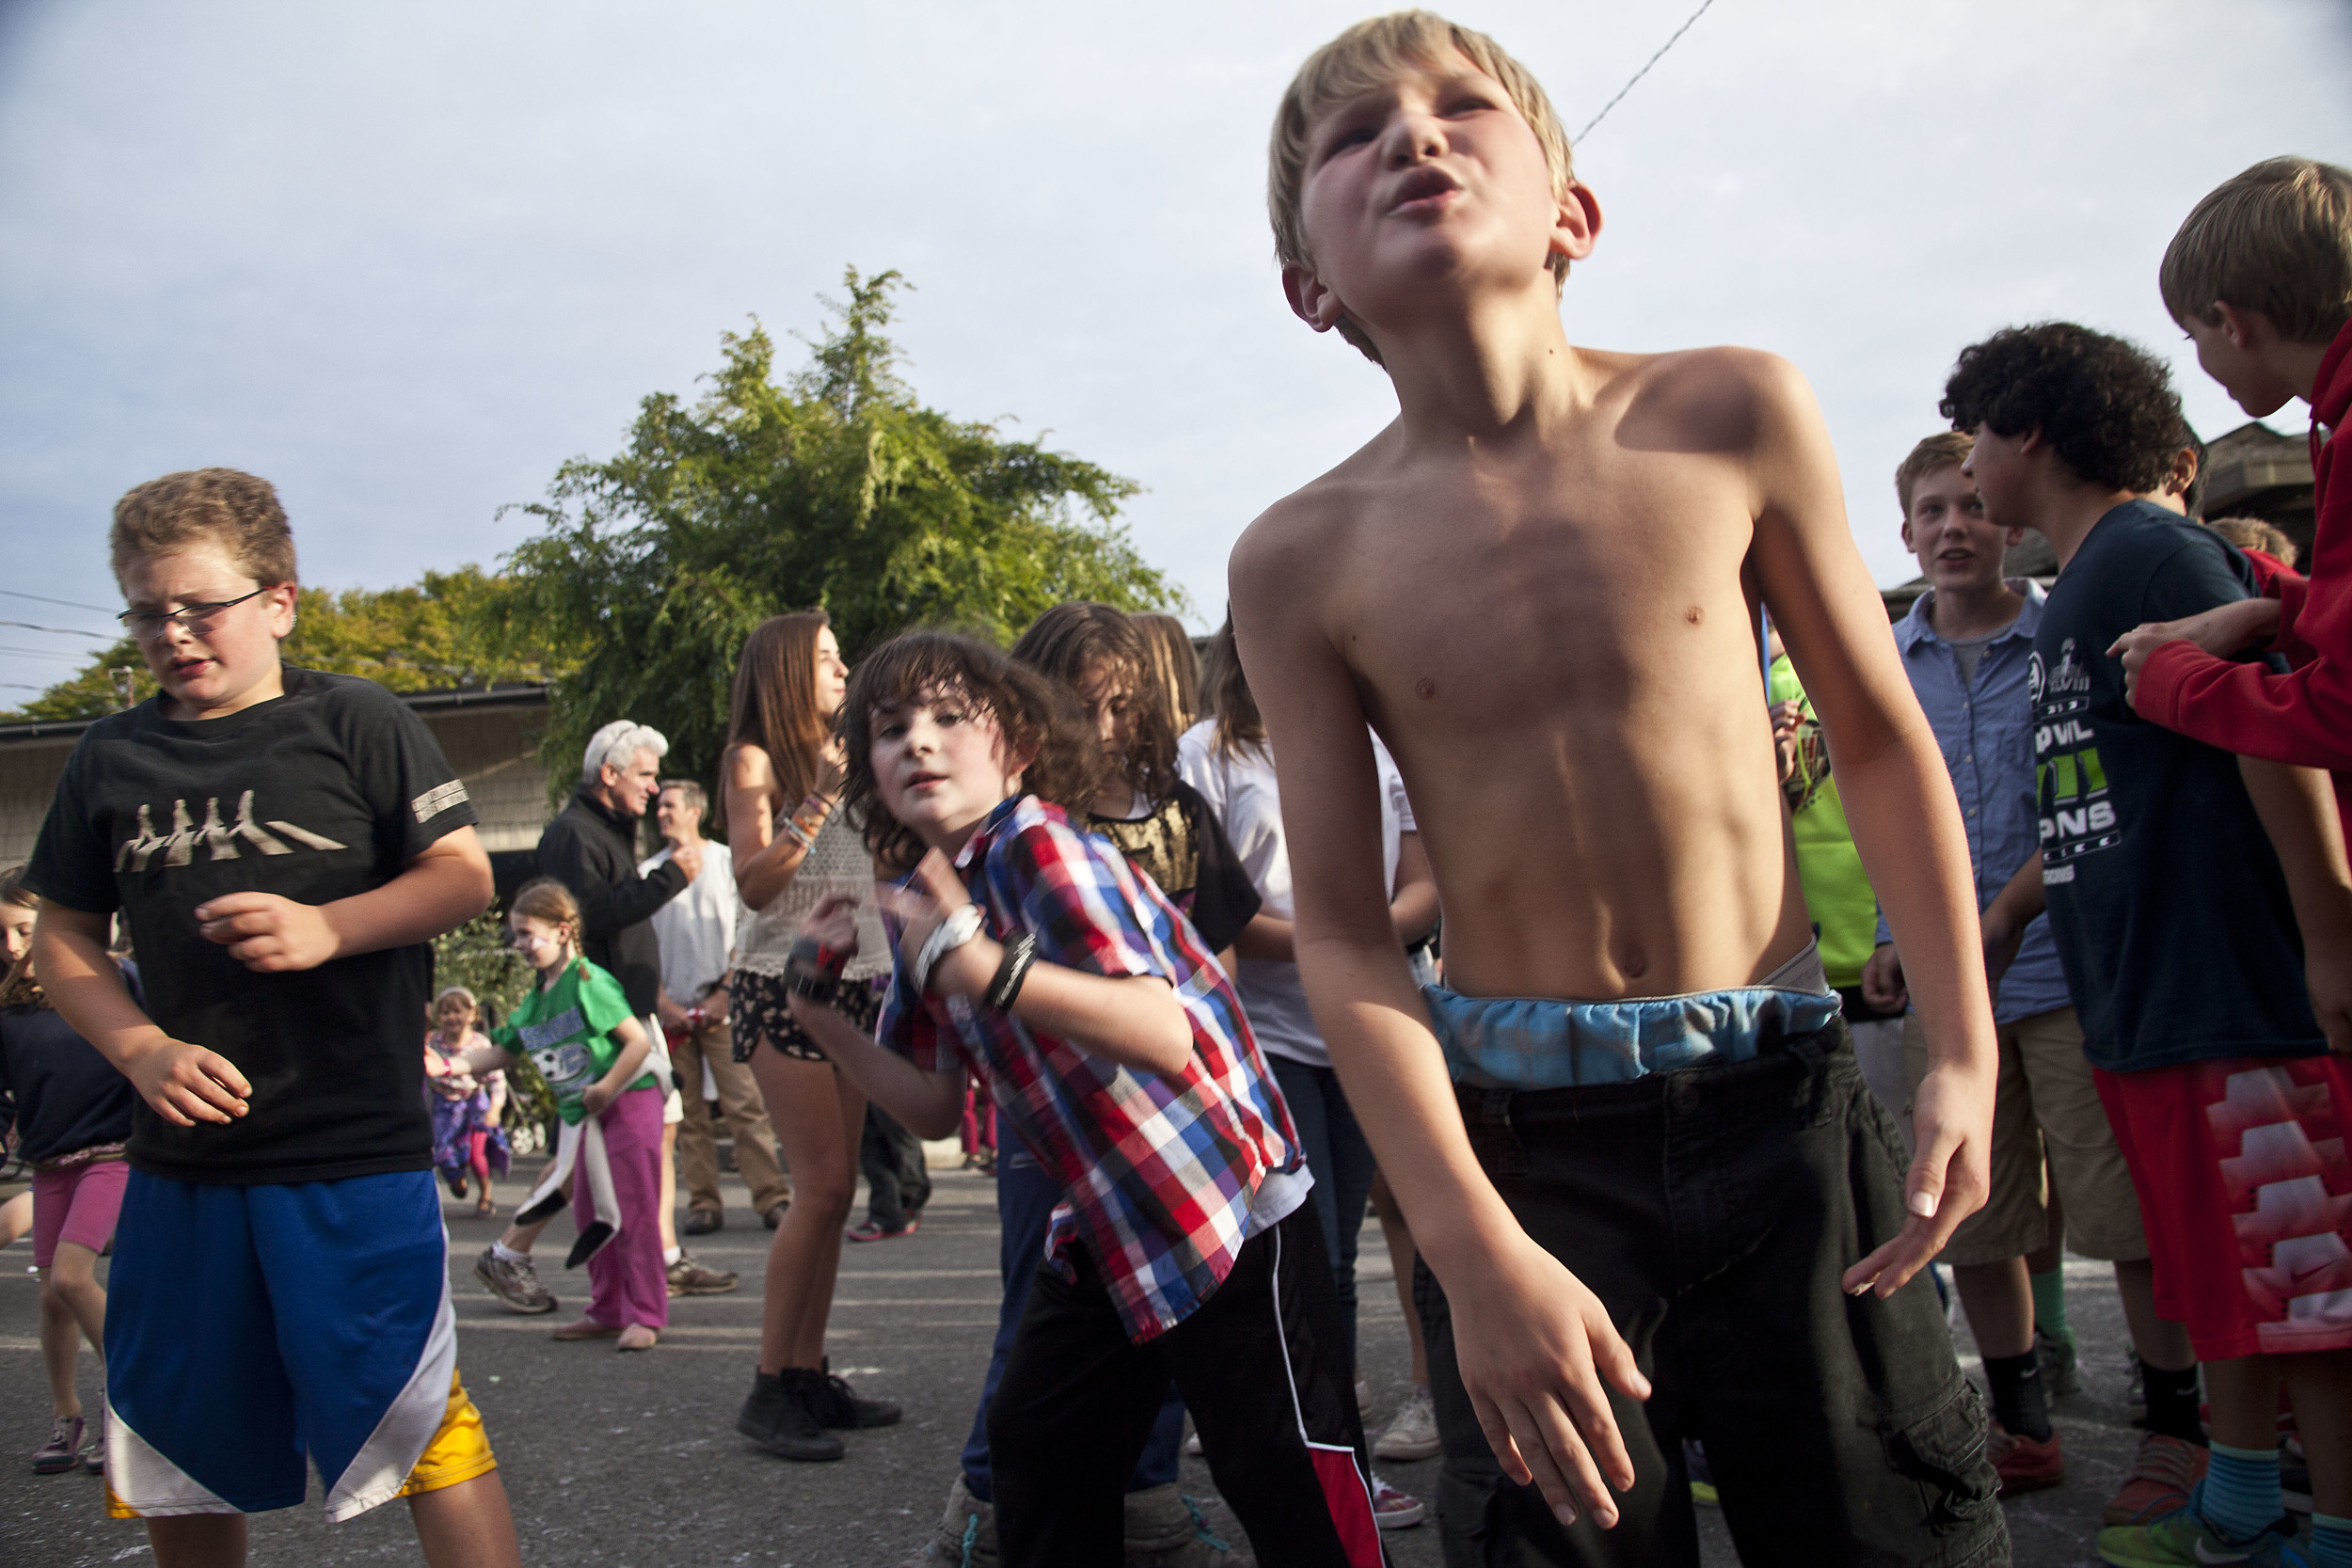 Young dancers show a little attitude at the 2014 July 3rd Street Dance event in downtown Winslow on Bainbridge Island.